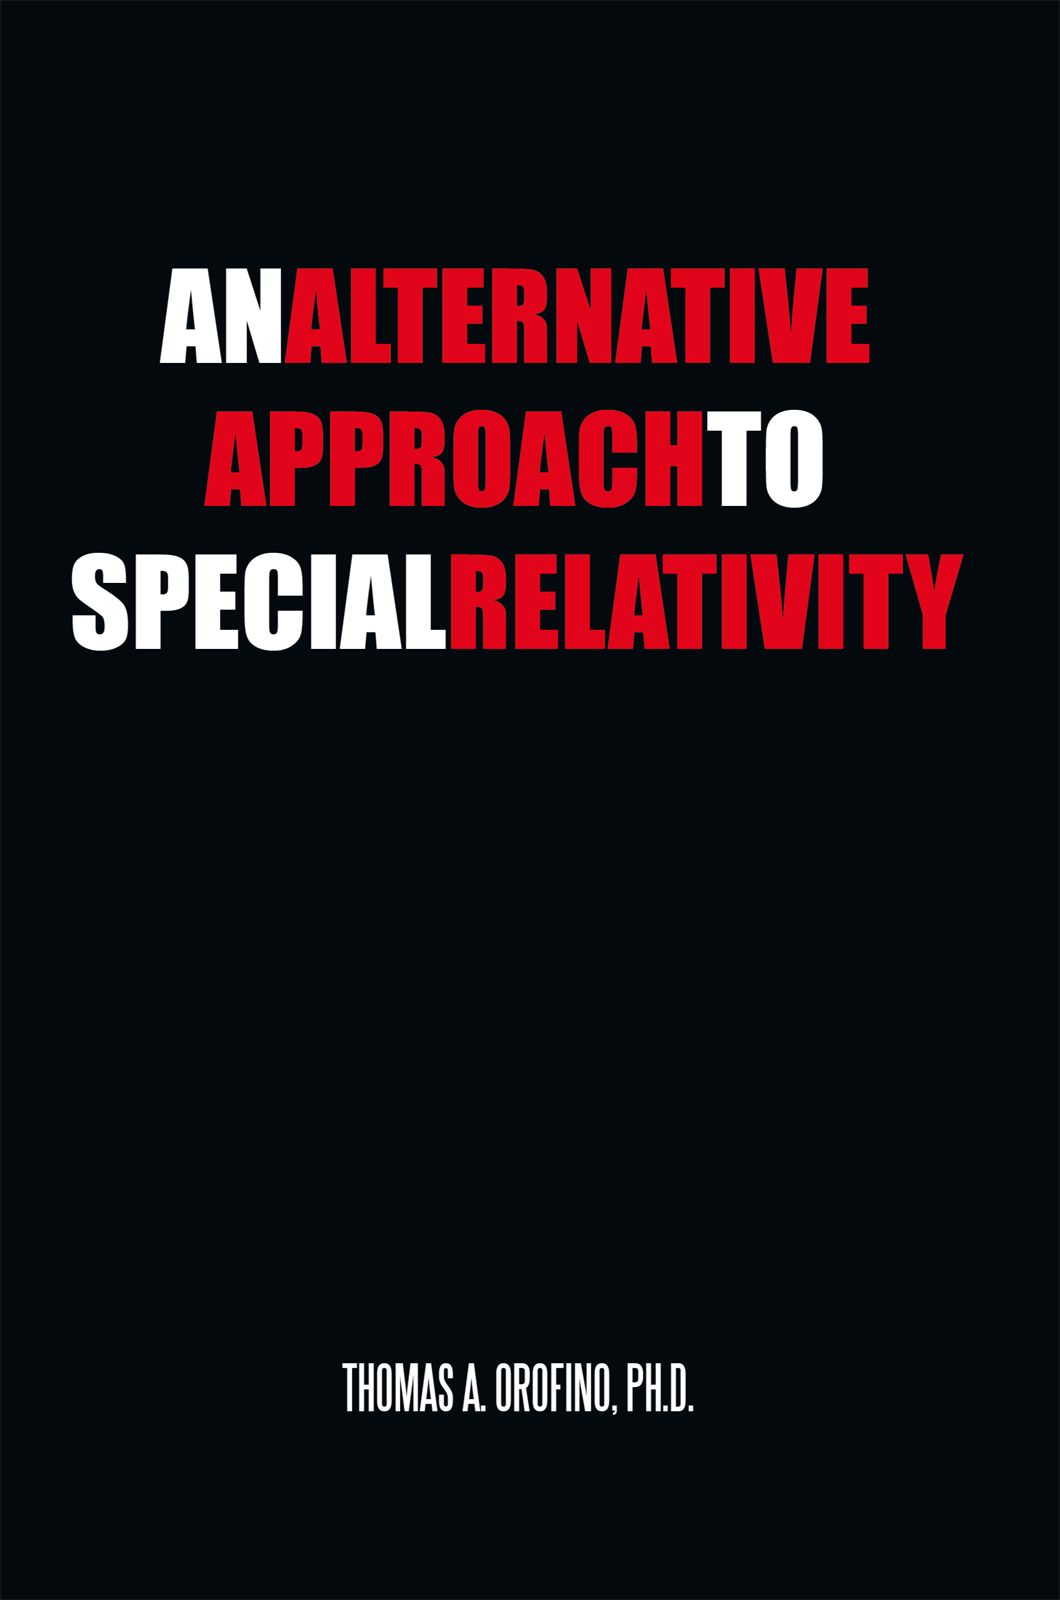 An Alternative Approach To Special Relativity By: Thomas A. Orofino, Ph.D.